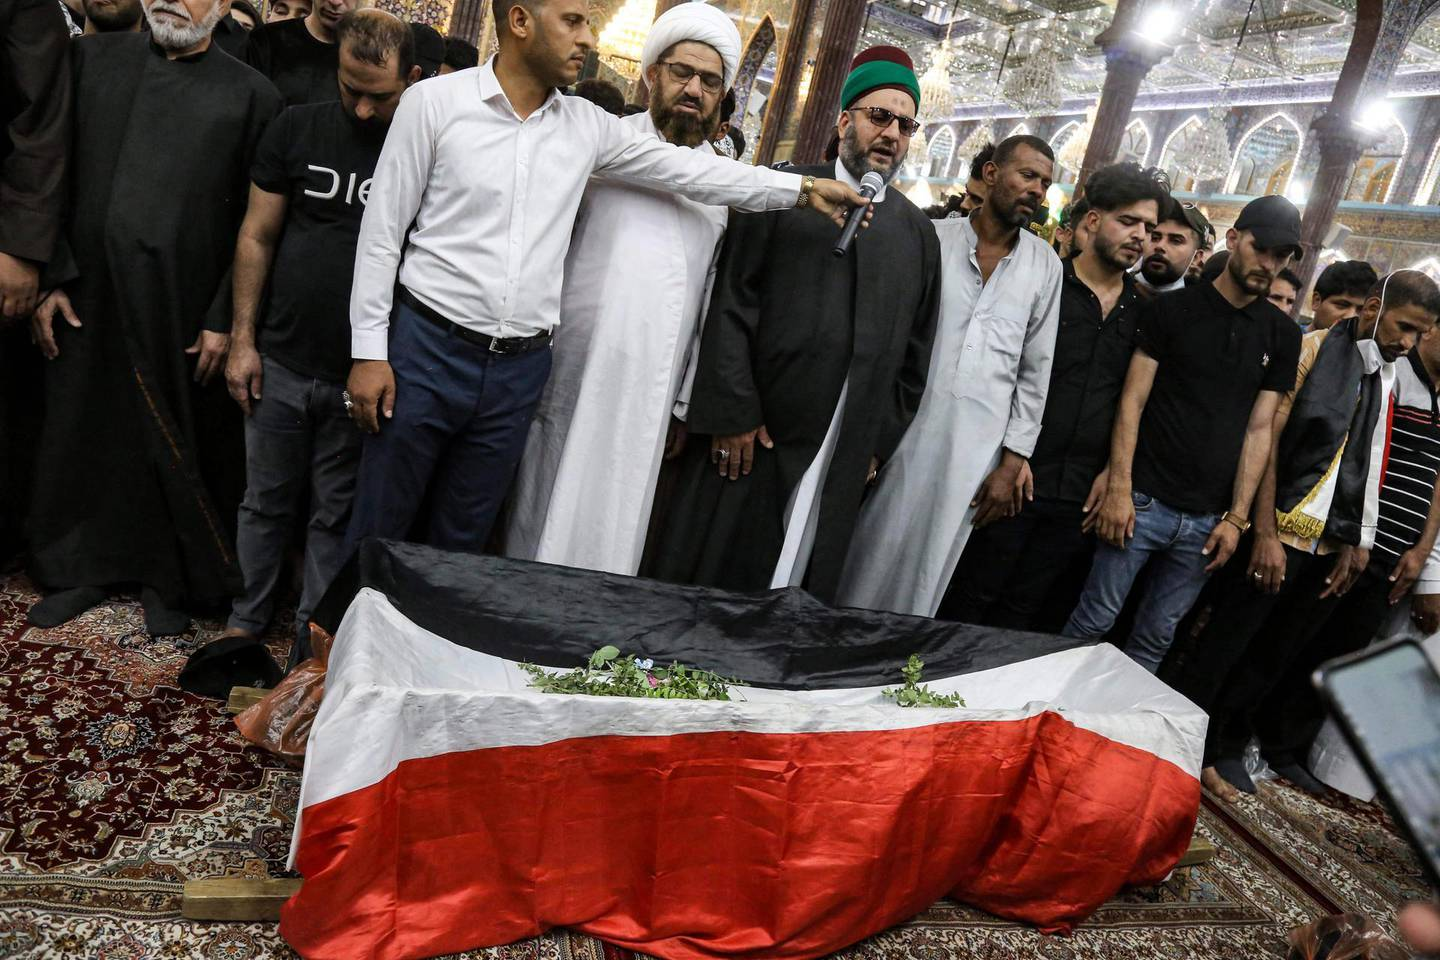 Mourners pray by the body of Iraqi anti-government activist Ihab al-Wazni (Ehab al-Ouazni) during his funeral at the Imam Hussein Shrine in the central holy shrine city of Karbala on May 9, 2021. Wazni, a coordinator of protests in the Shiite shrine city of Karbala, was a vocal opponent of corruption, the stranglehold of Tehran-linked armed groups and Iran's influence in Iraq. He was shot overnight outside his home by men on motorbikes, in an ambush caught on surveillance cameras. He had narrowly escaped death in December 2019, when men on motorbikes used silenced weapons to kill fellow activist Fahem al-Tai as he was dropping him home in Karbala, where pro-Tehran armed groups are legion. / AFP / Mohammed SAWAF